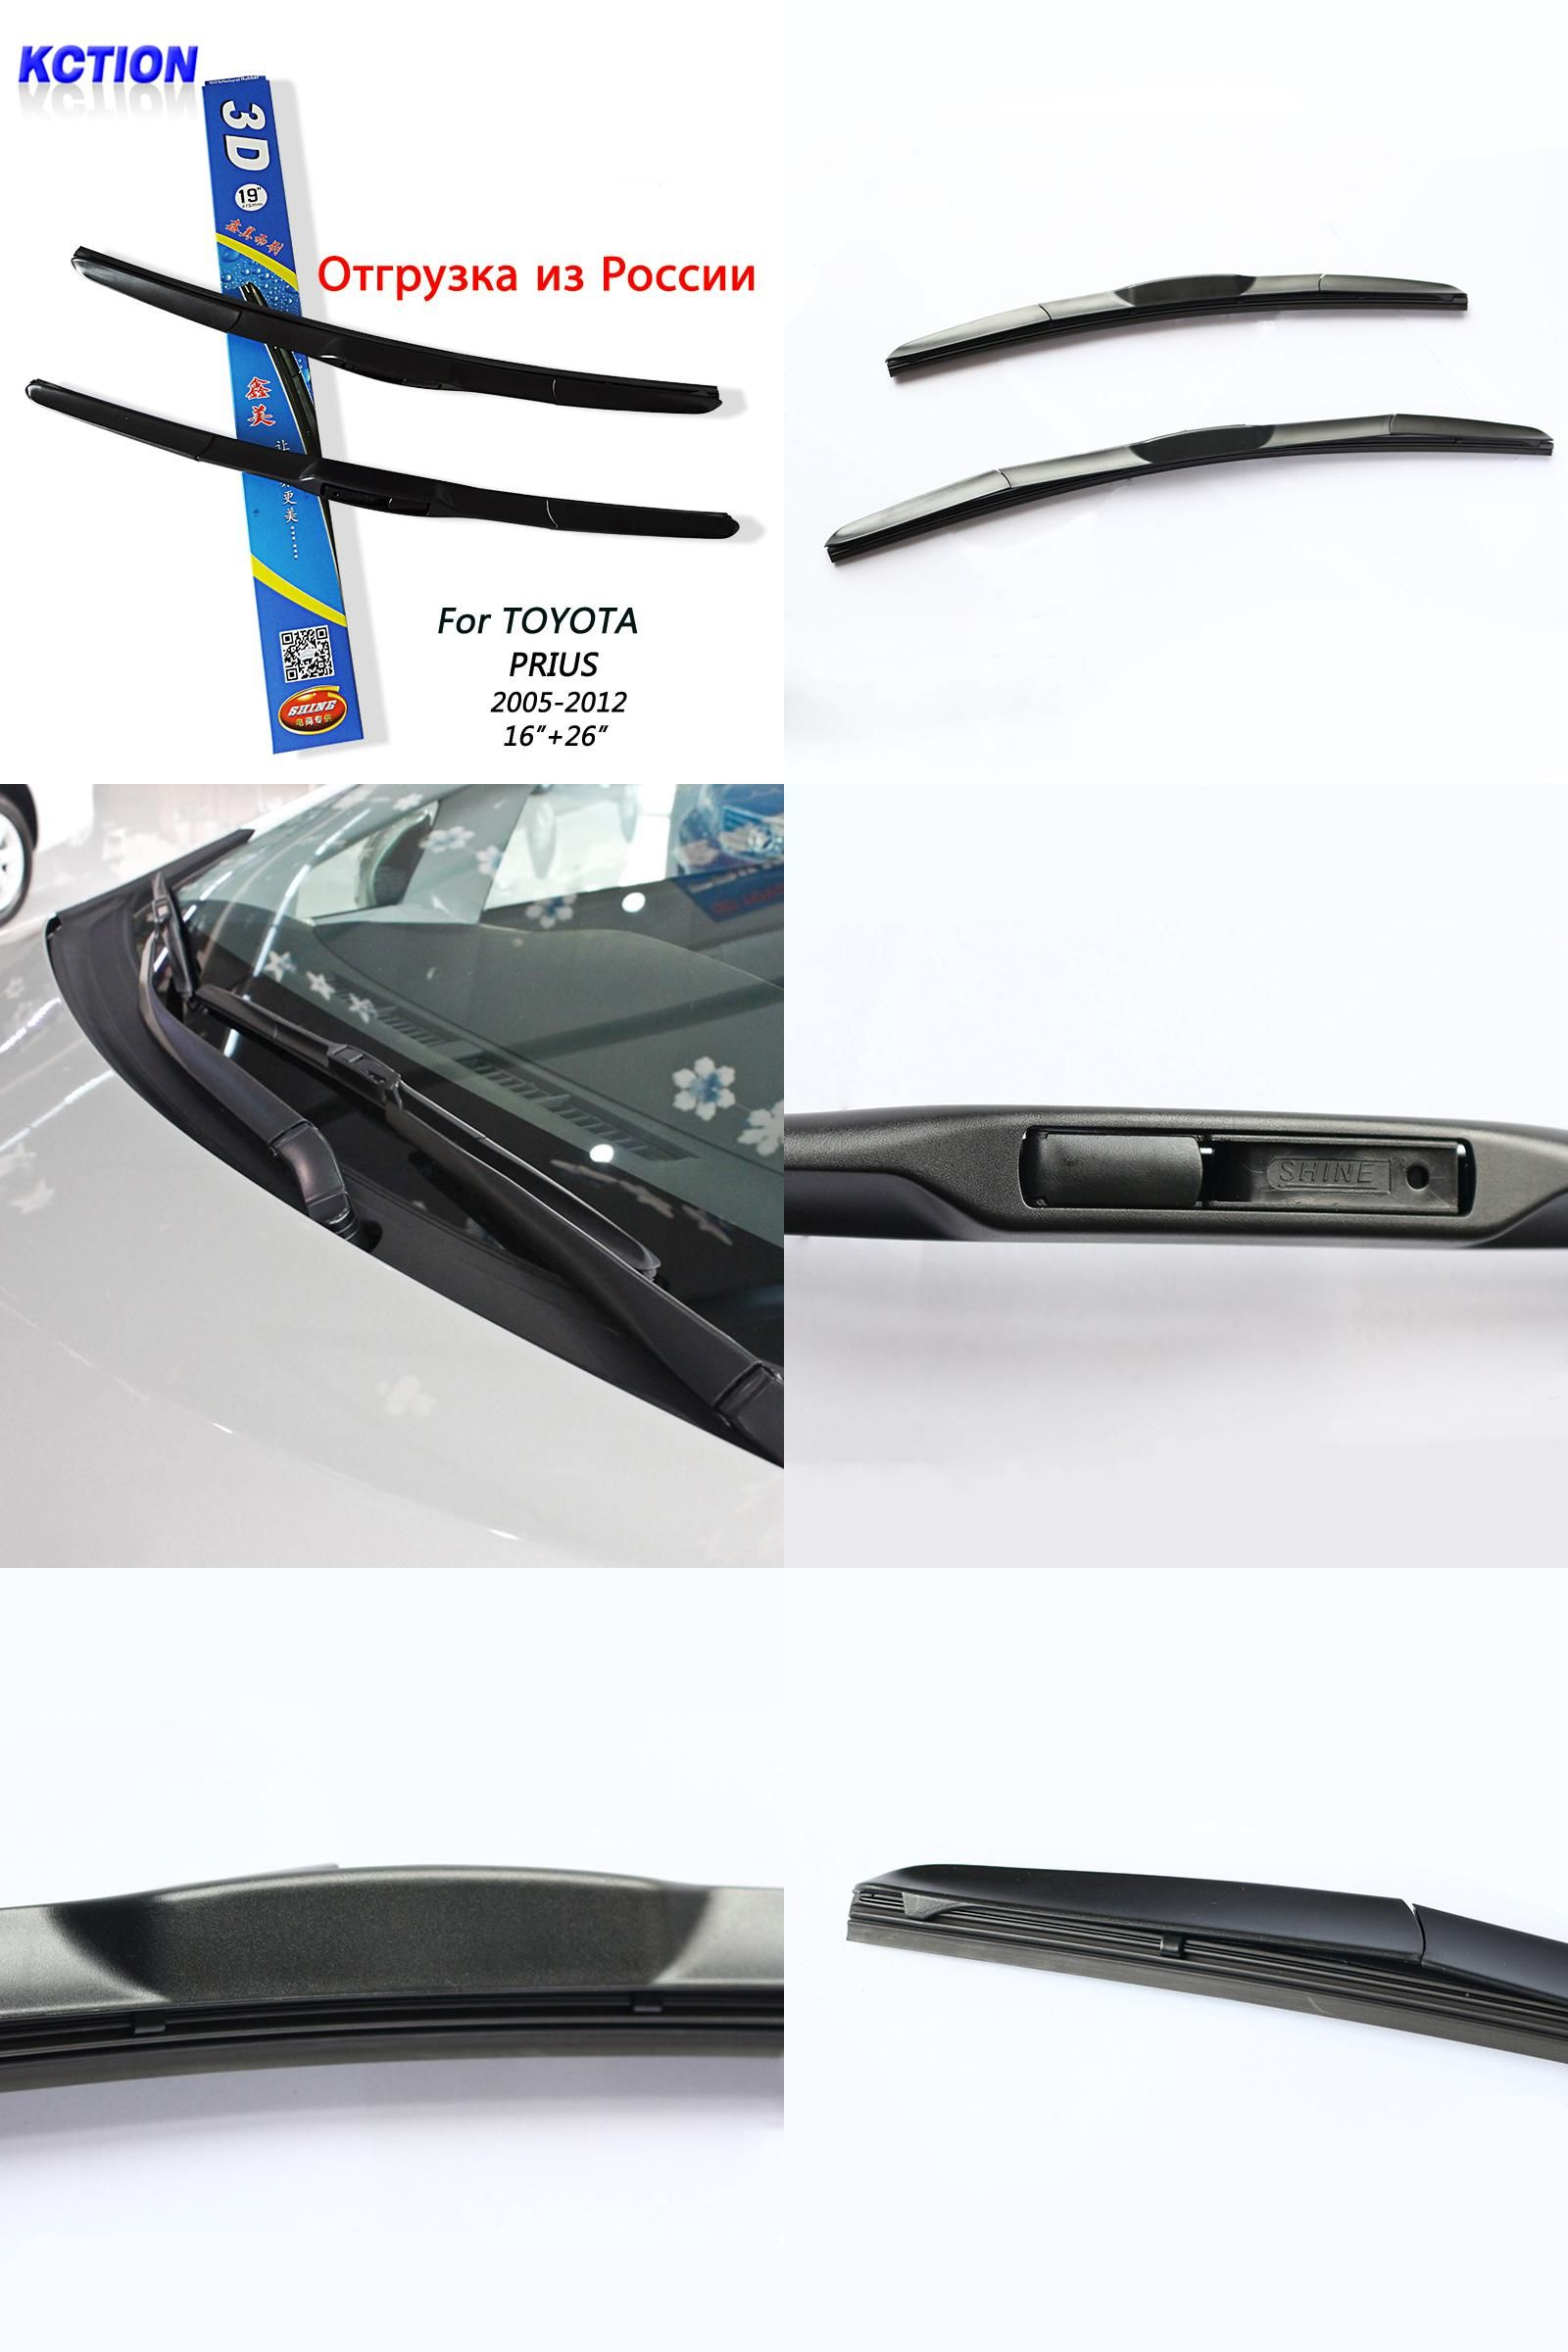 What Is The Best Quality Windshield Wipers